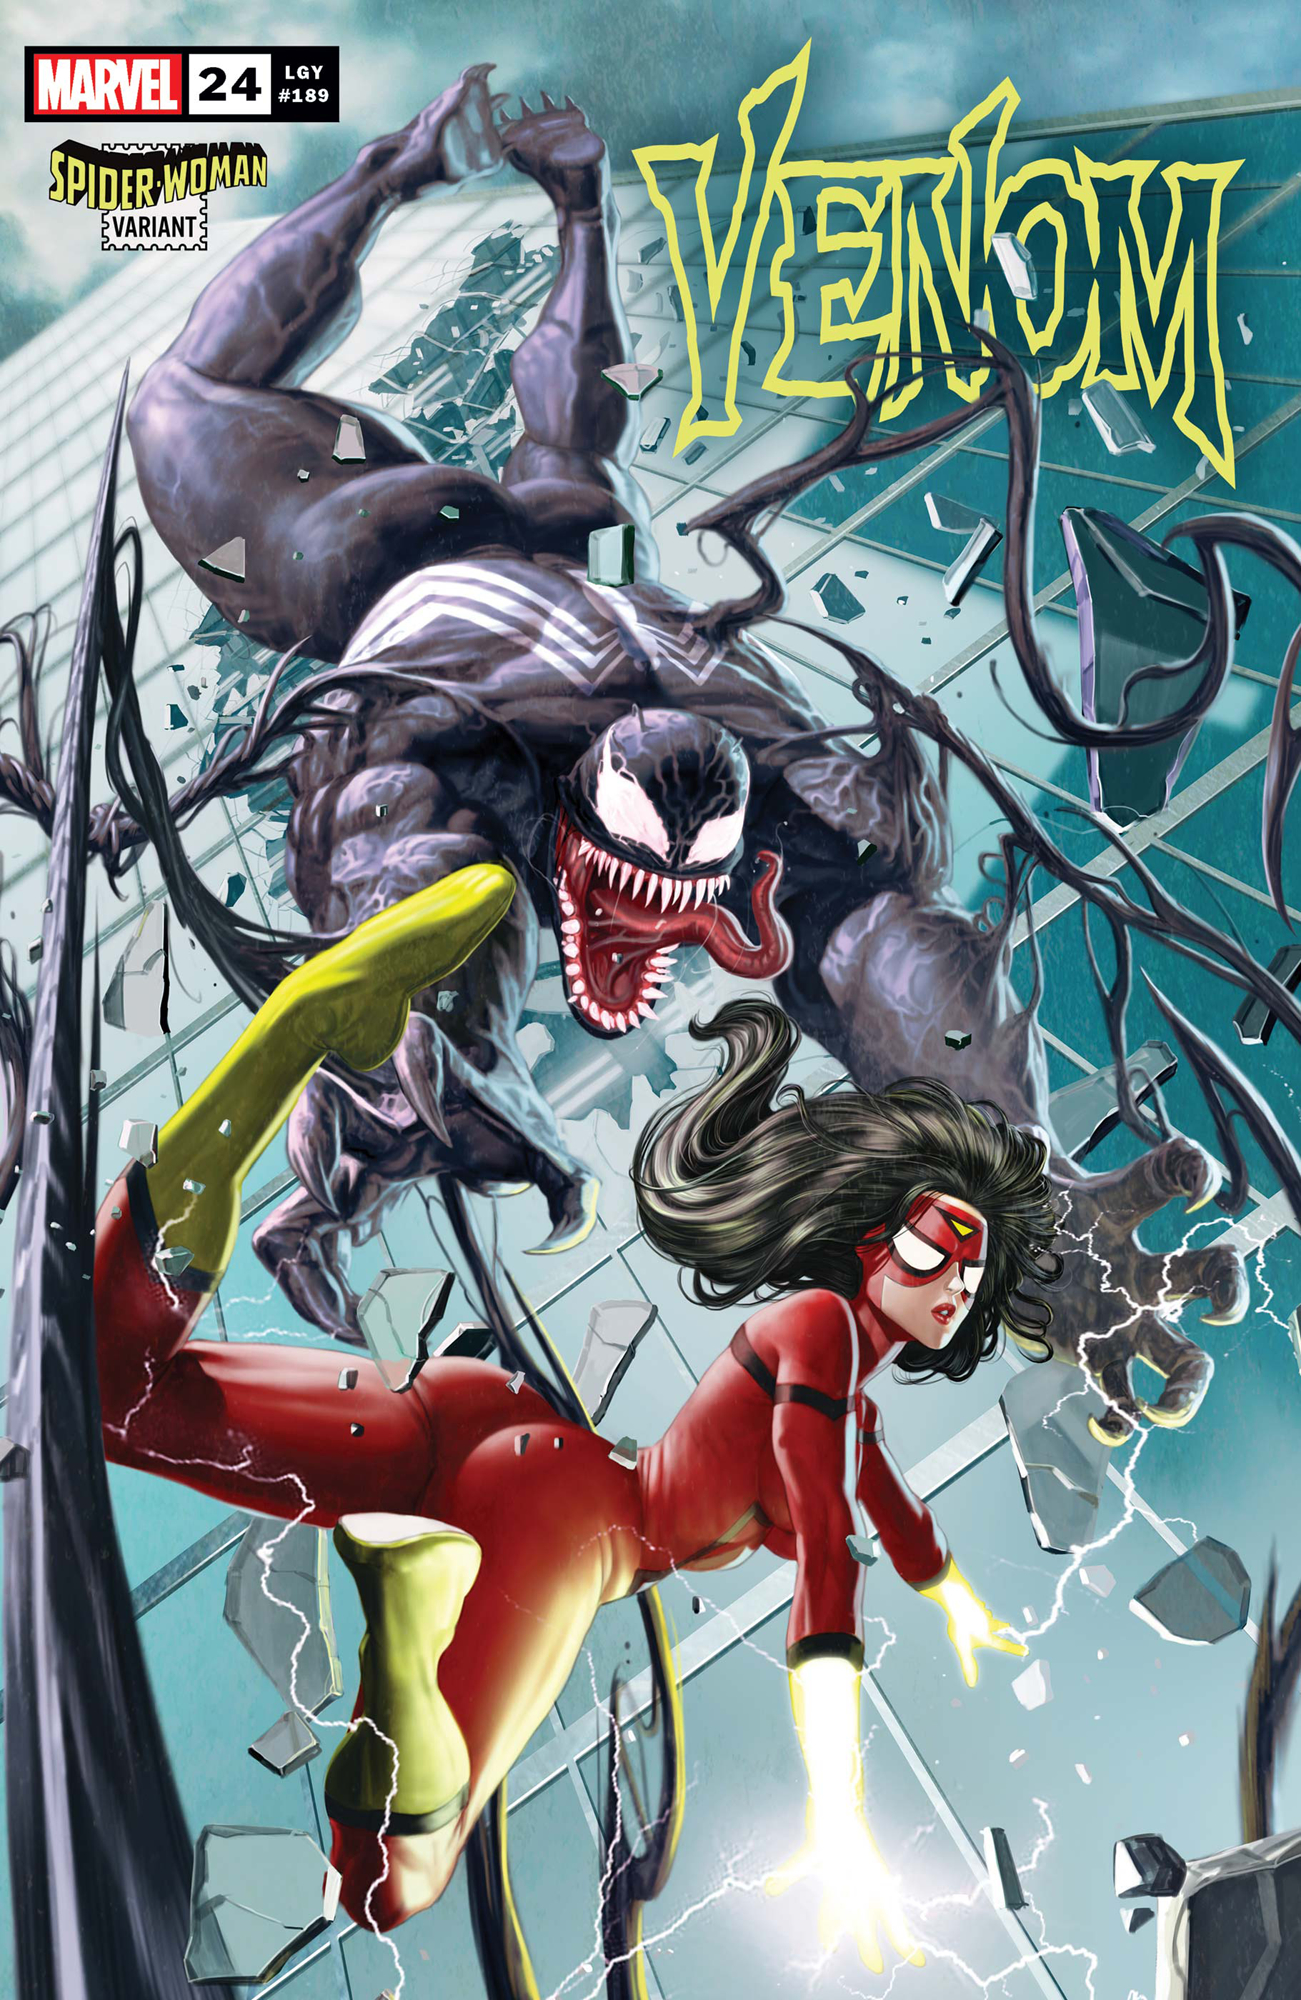 VENOM #24 ROCK-HE KIM SPIDER-WOMAN VAR